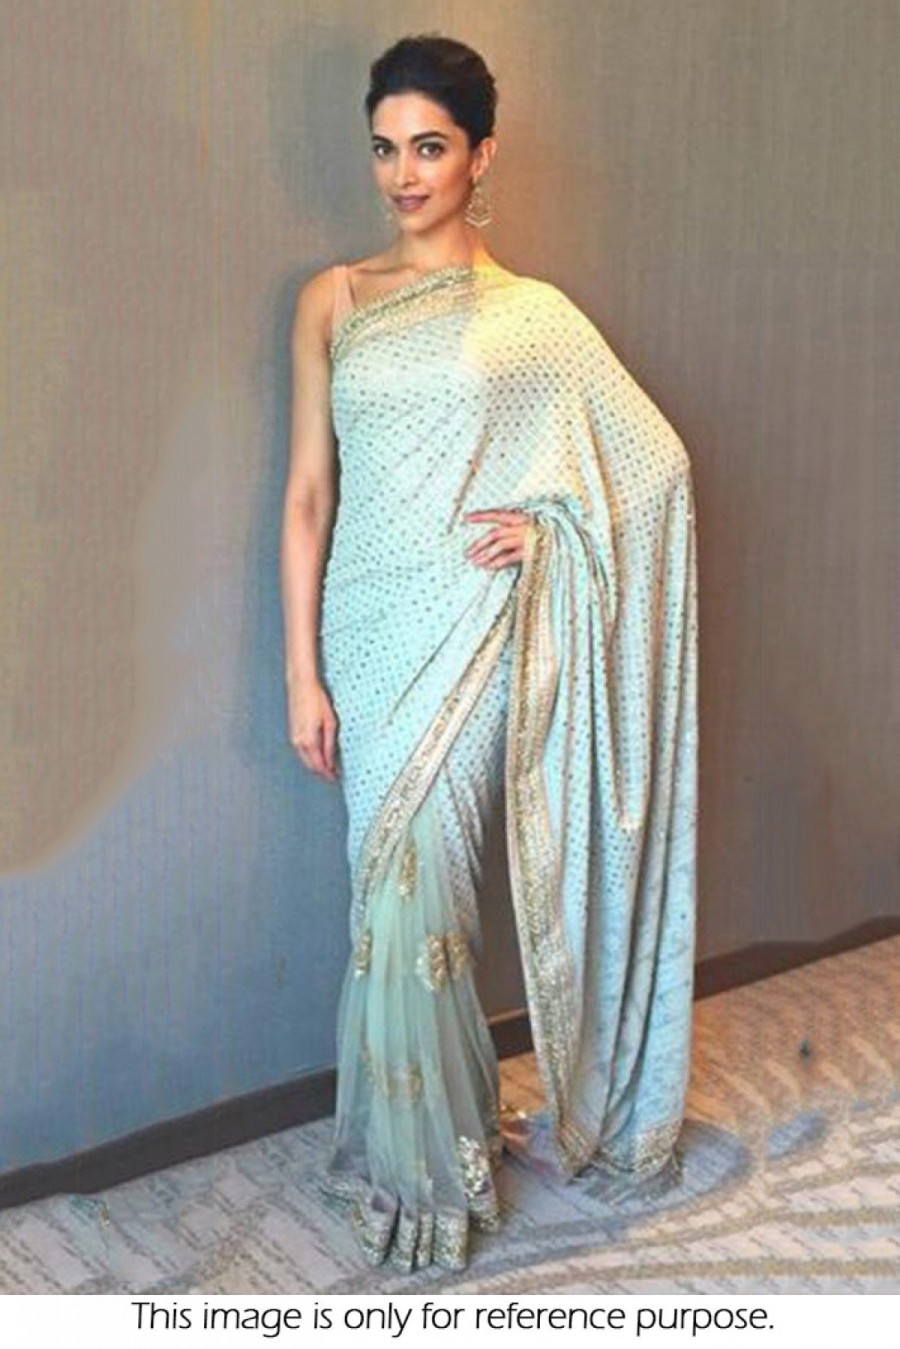 fb0a14d1c5 Buy Deepika Padukone Georgette and Nylon Net Designer Saree In Sky Blue  Colour NC2264 Online